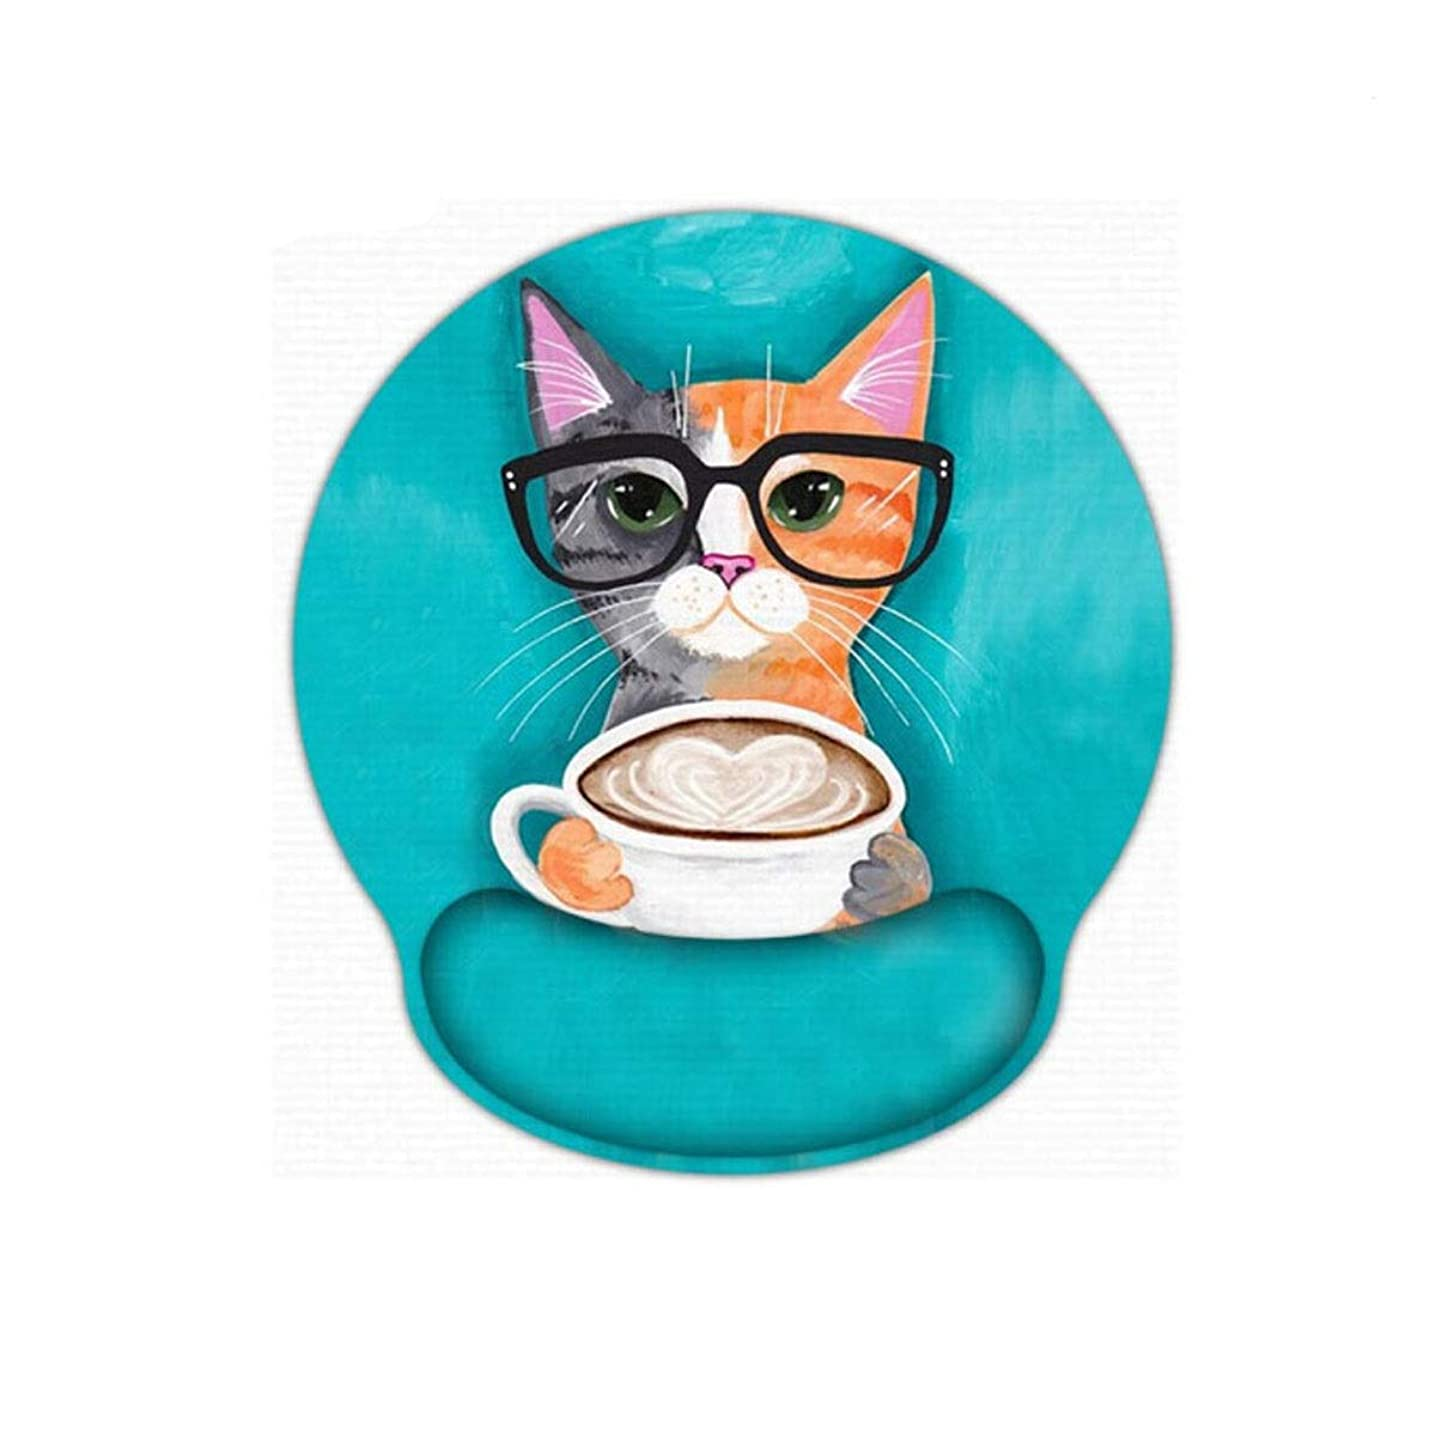 CQIANG Mouse Pad, Artificial Creative Office Wristband, Memory Cotton Wrist Pad, Thickened Game Pad, Best Gift Ergonomically Designed for a More Comfortable offi (Color : Cat)